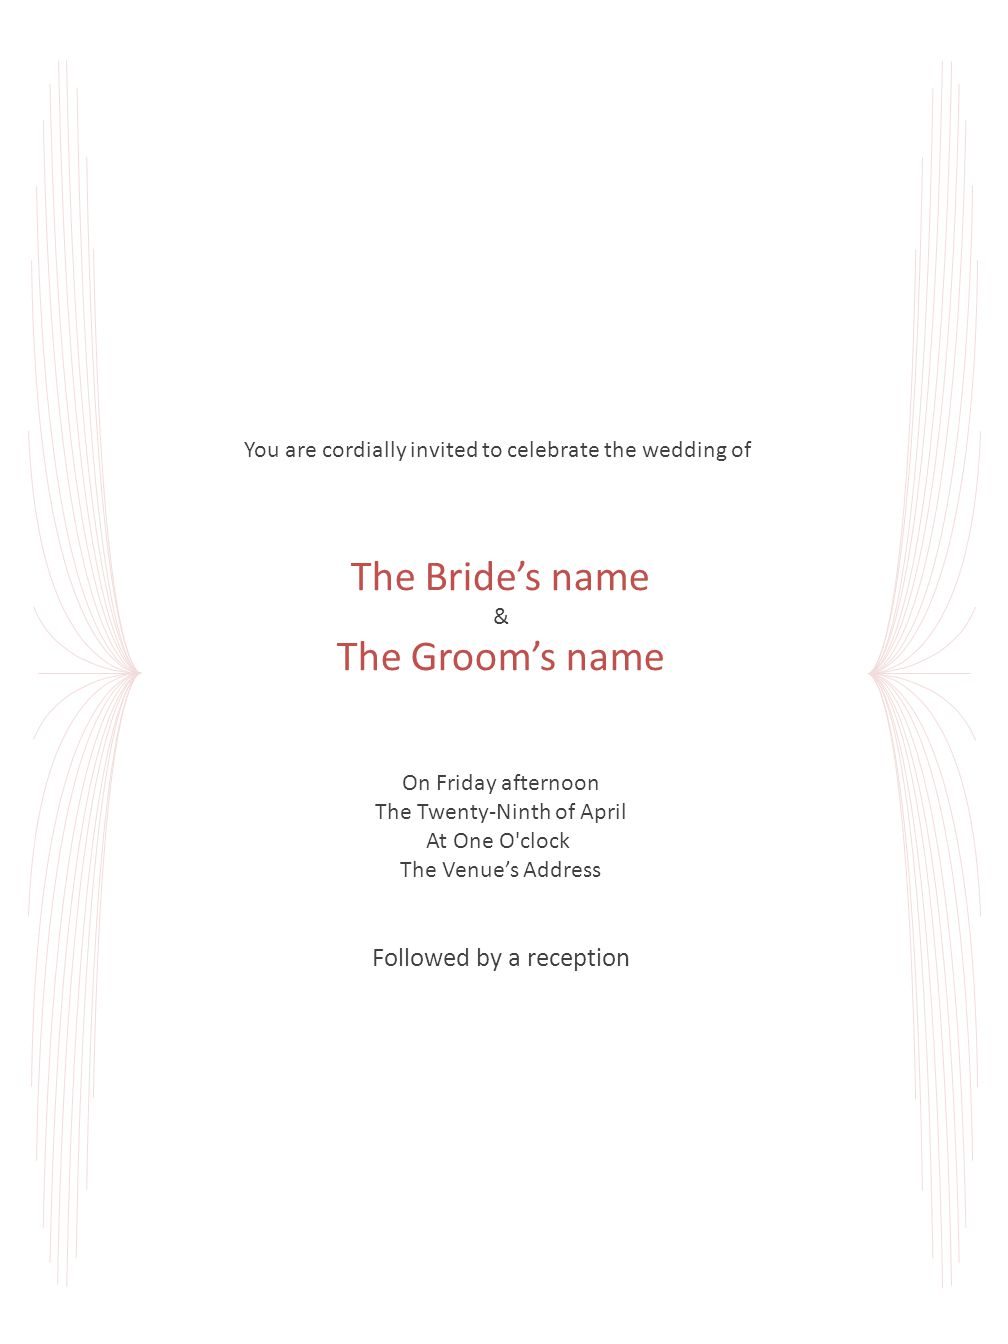 The Bride's name The Groom's name Followed by a reception